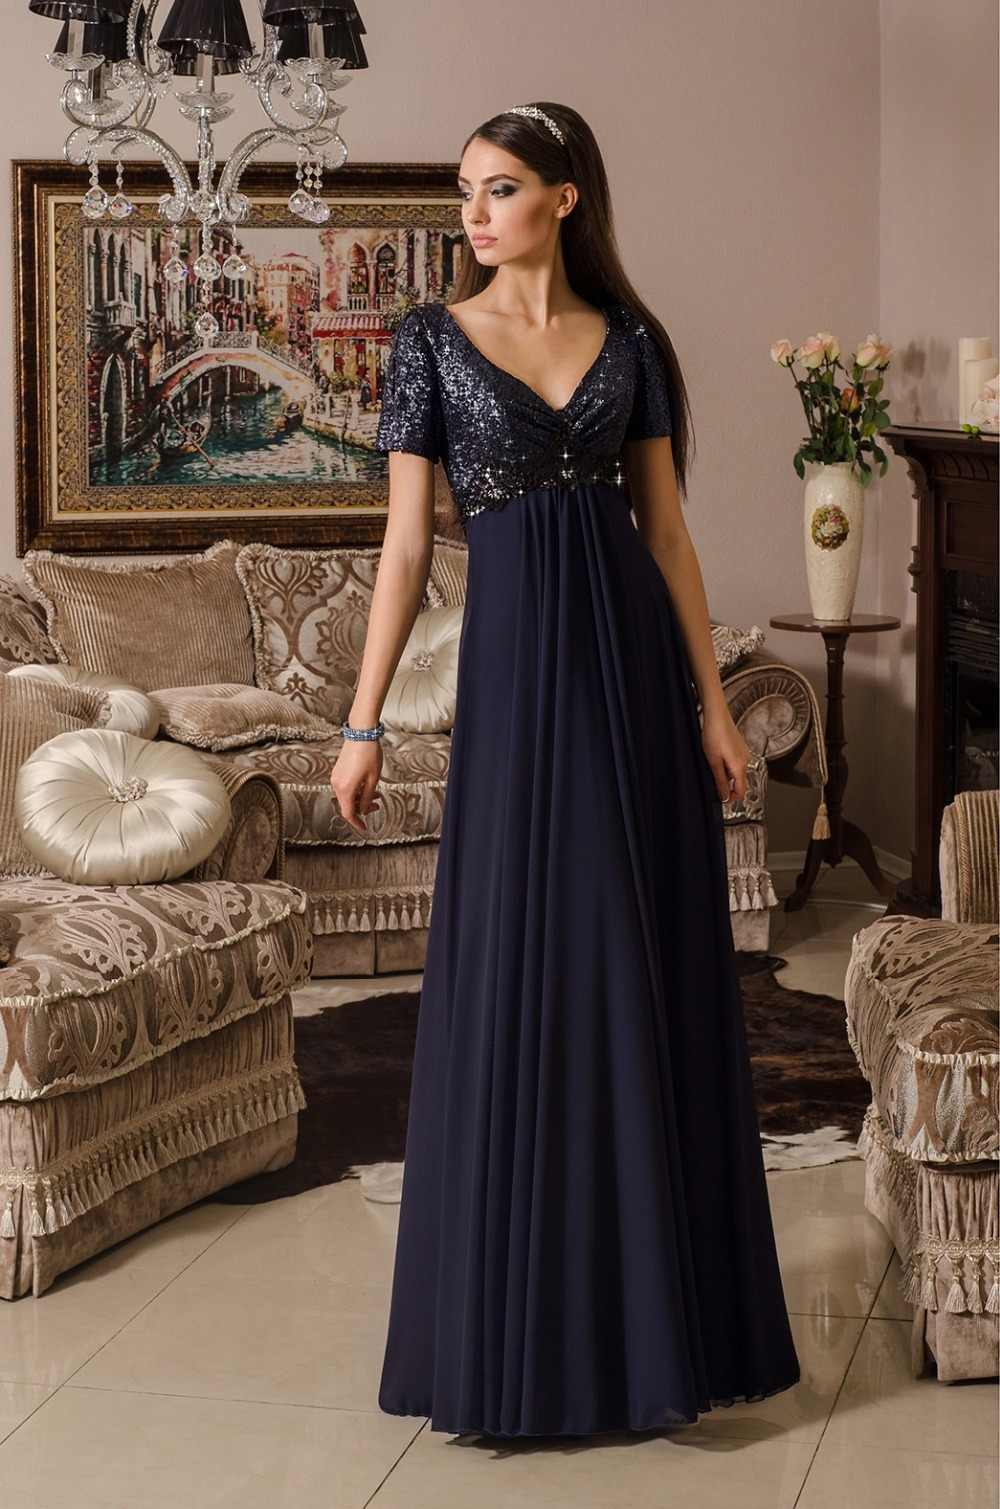 2015 Woman Party Dresses